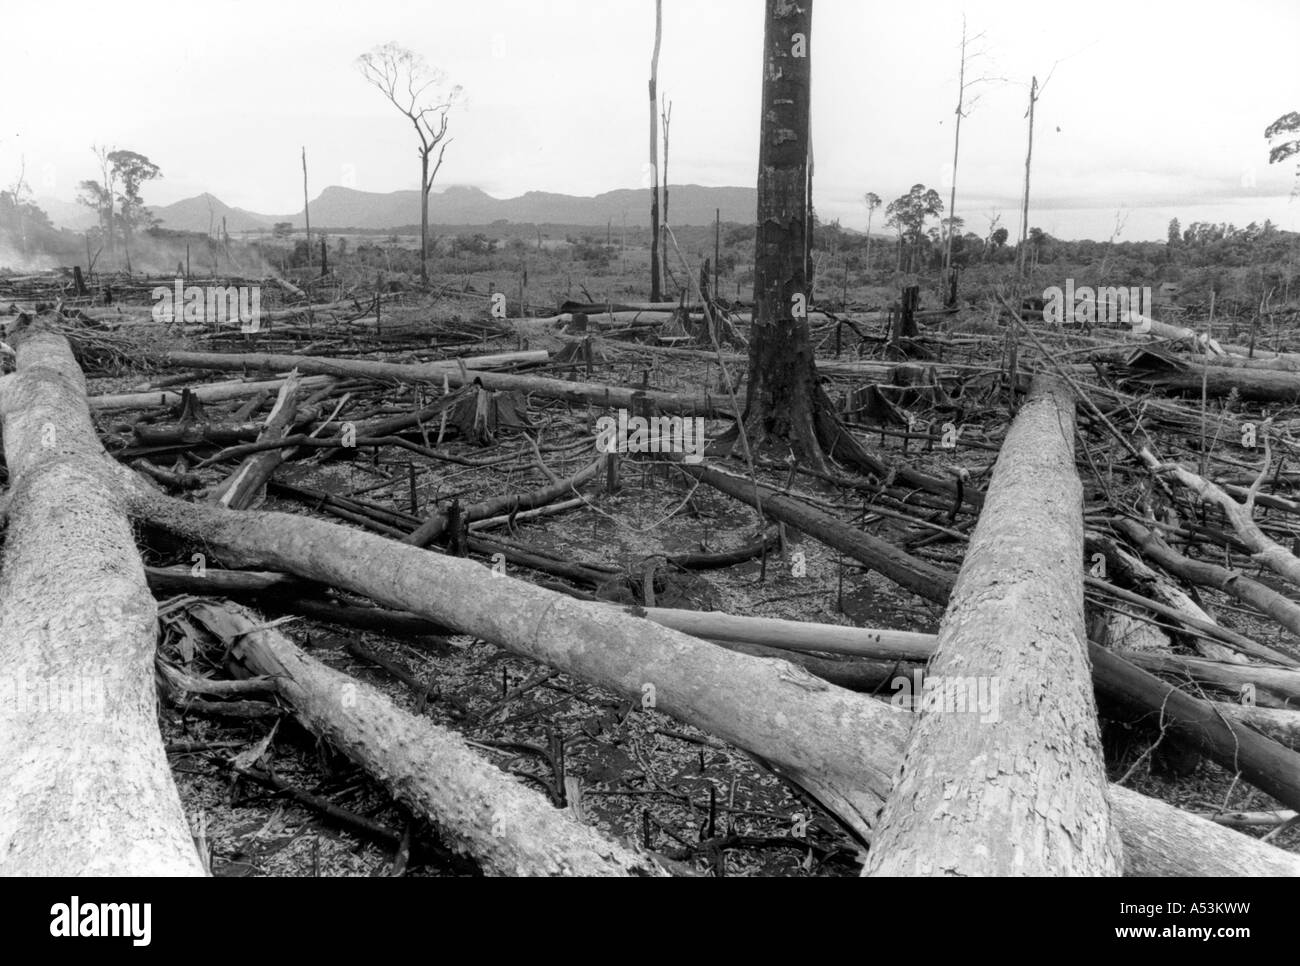 Painet ha1576 317 black and white environment clear cut rain forest west kalimantan indonesia country developing - Stock Image